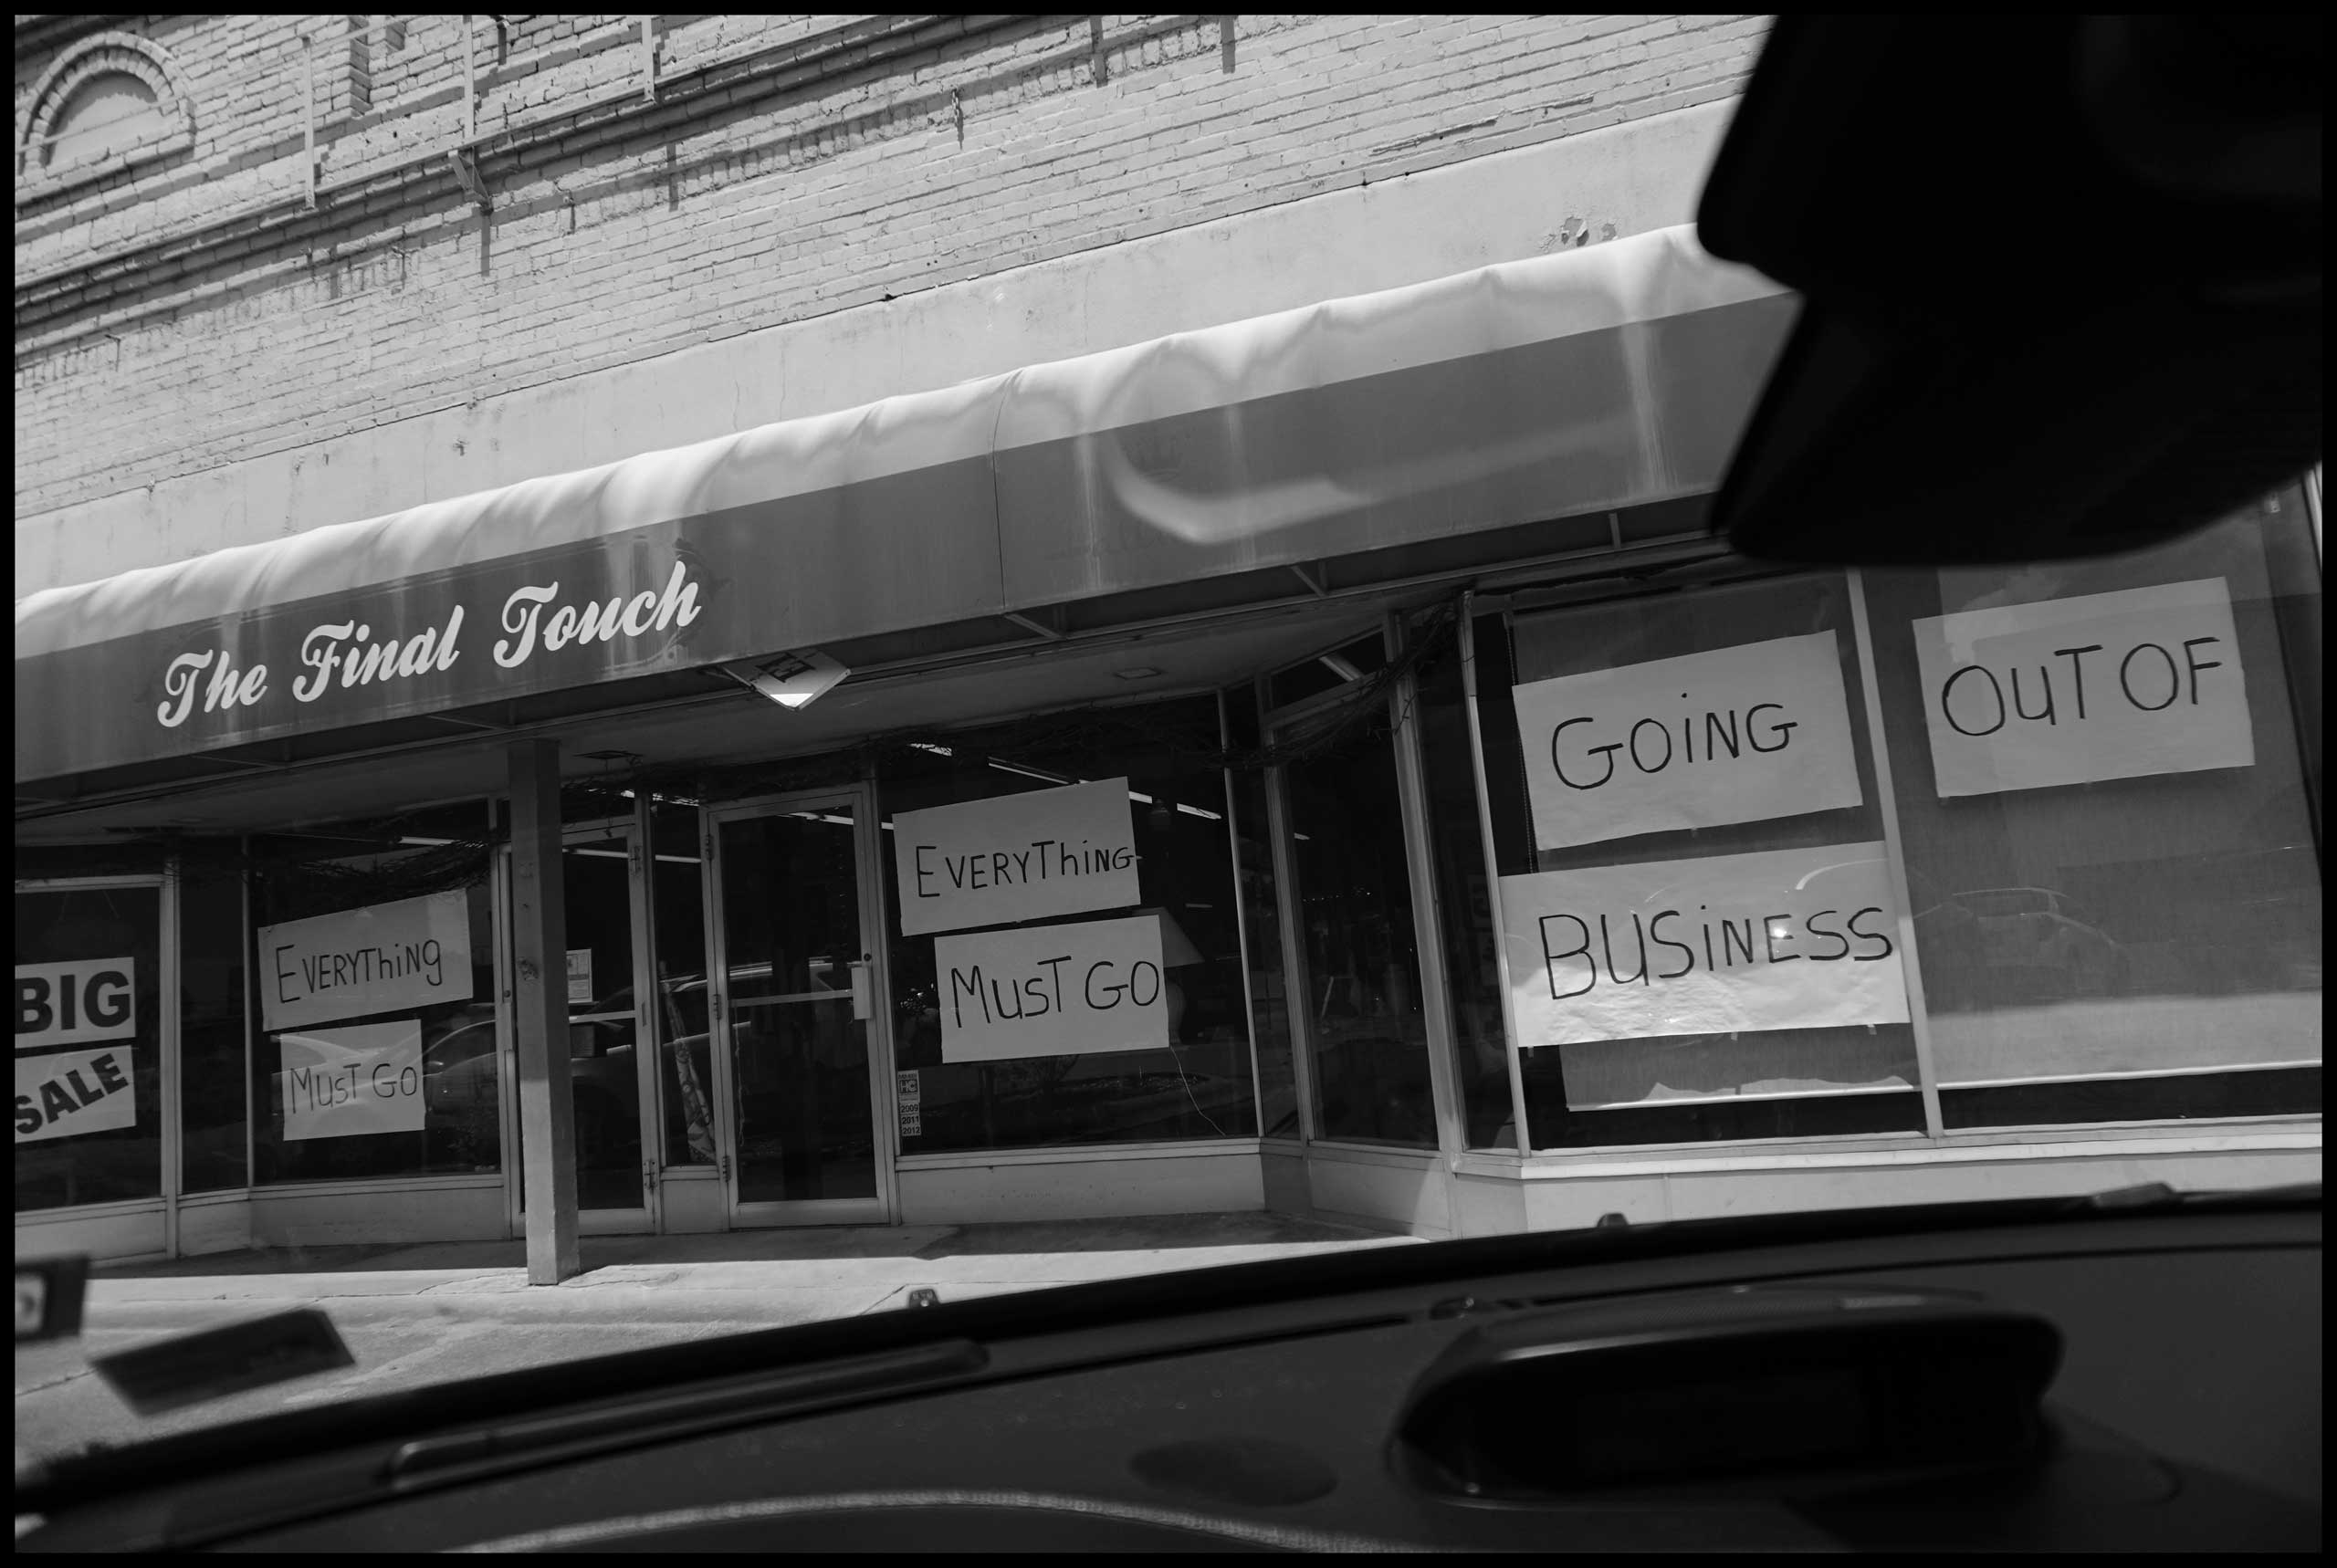 The last Touch store going out of business in Hope, Ark. 2016.